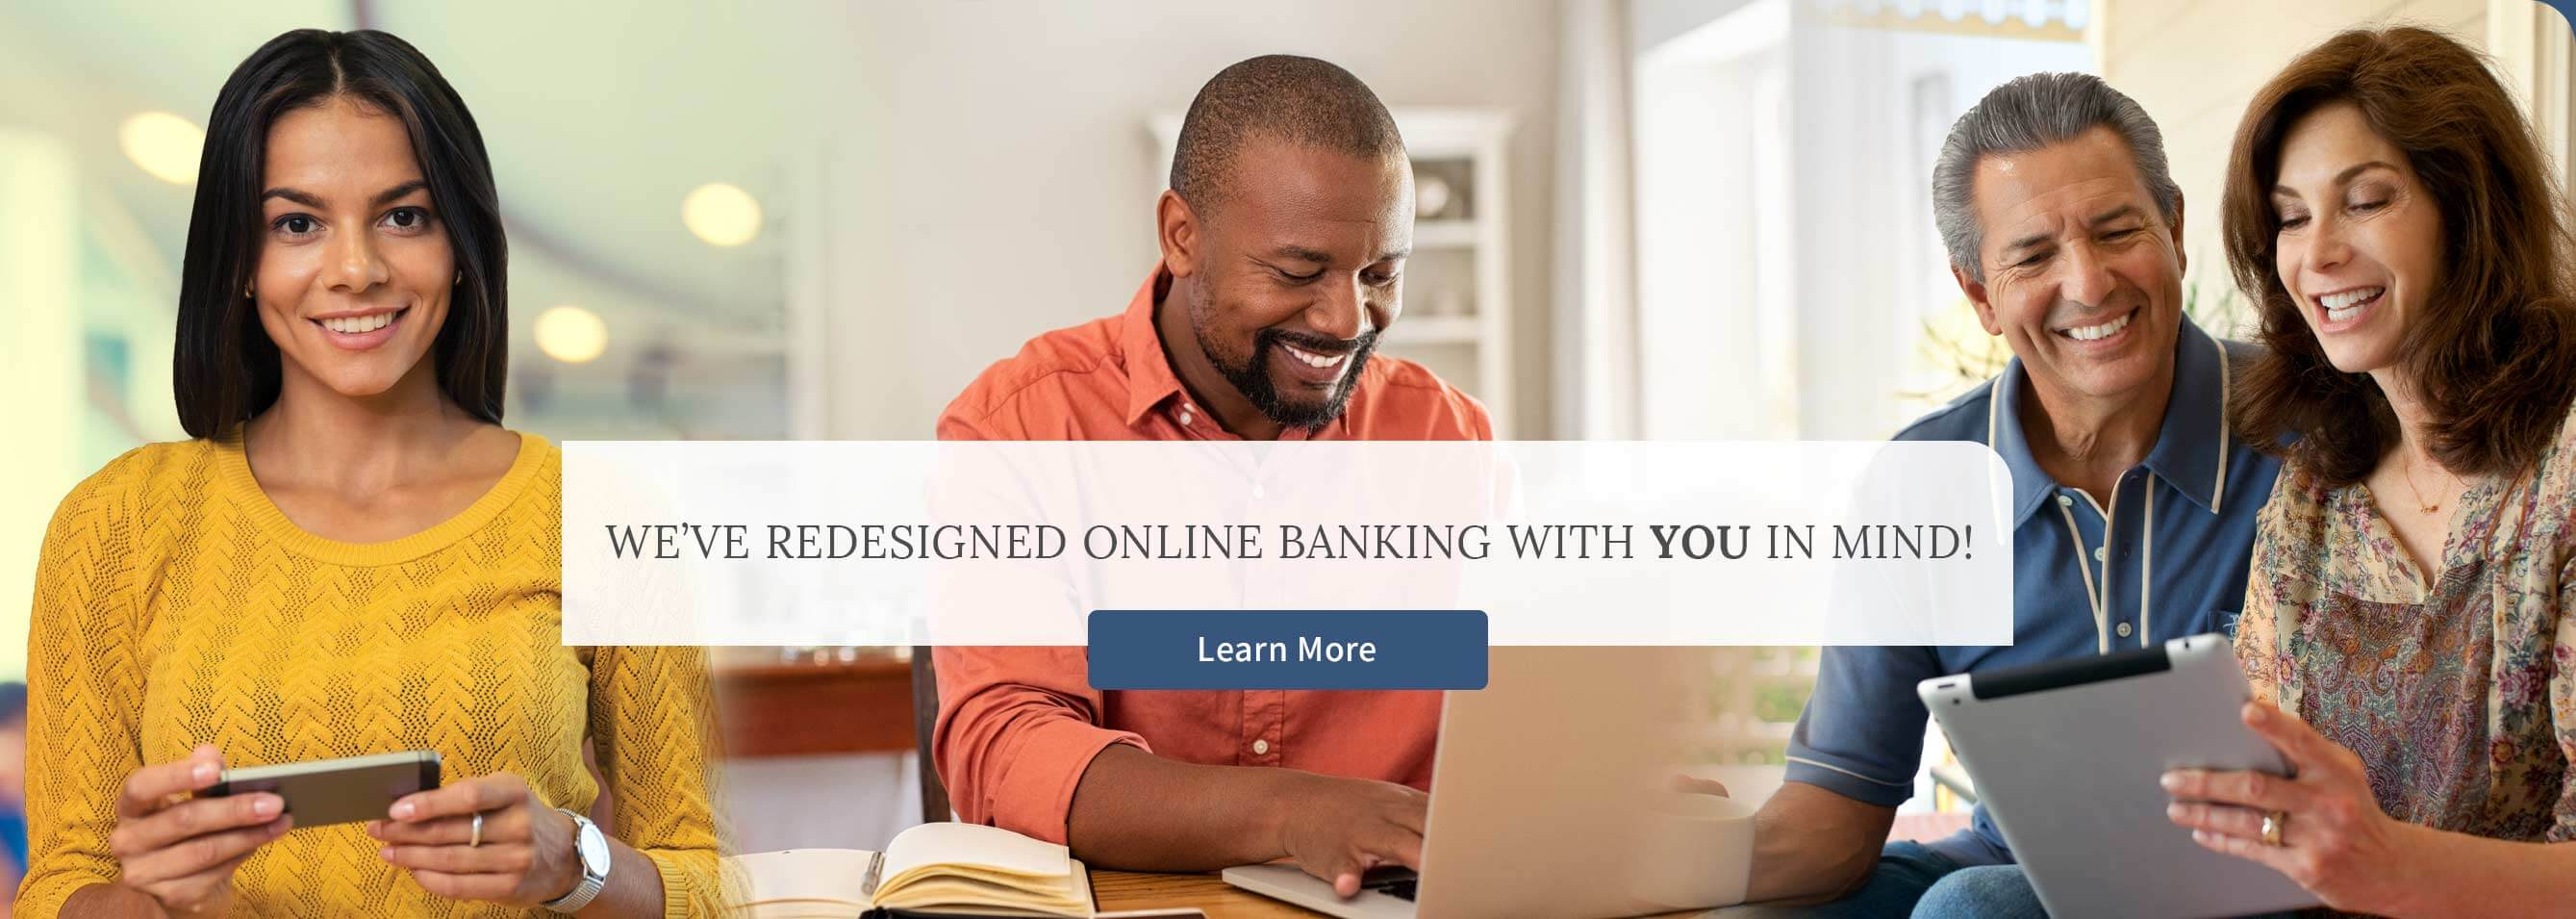 We've redesigned online banking with you in mind! - Learn More